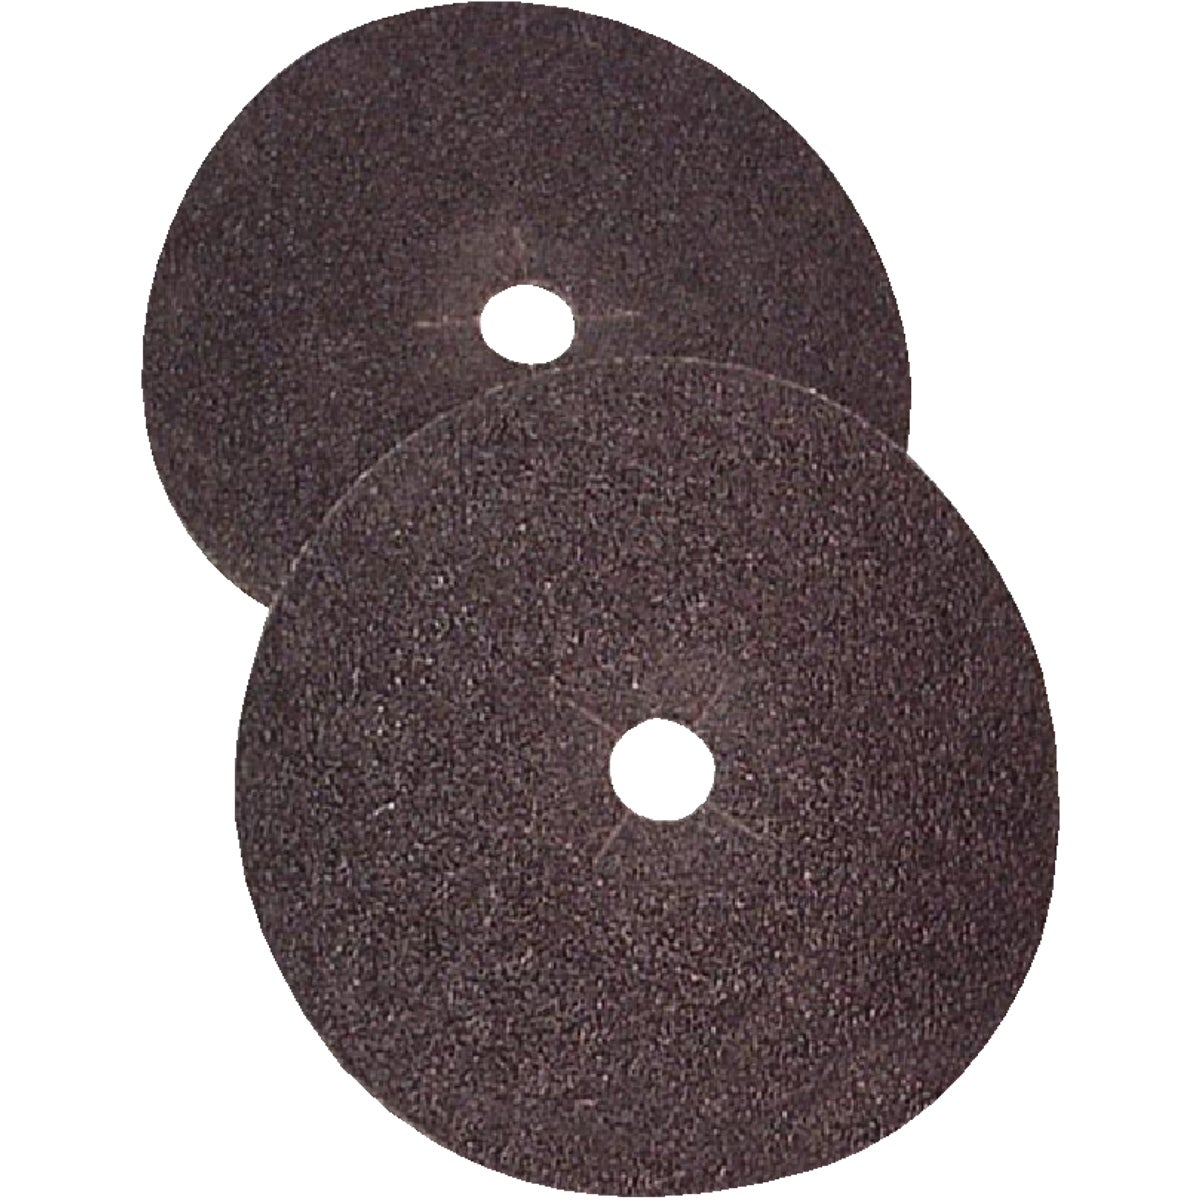 "7"" 60G FLR SANDING DISC - 006-870860 by Virginia Abrasives"